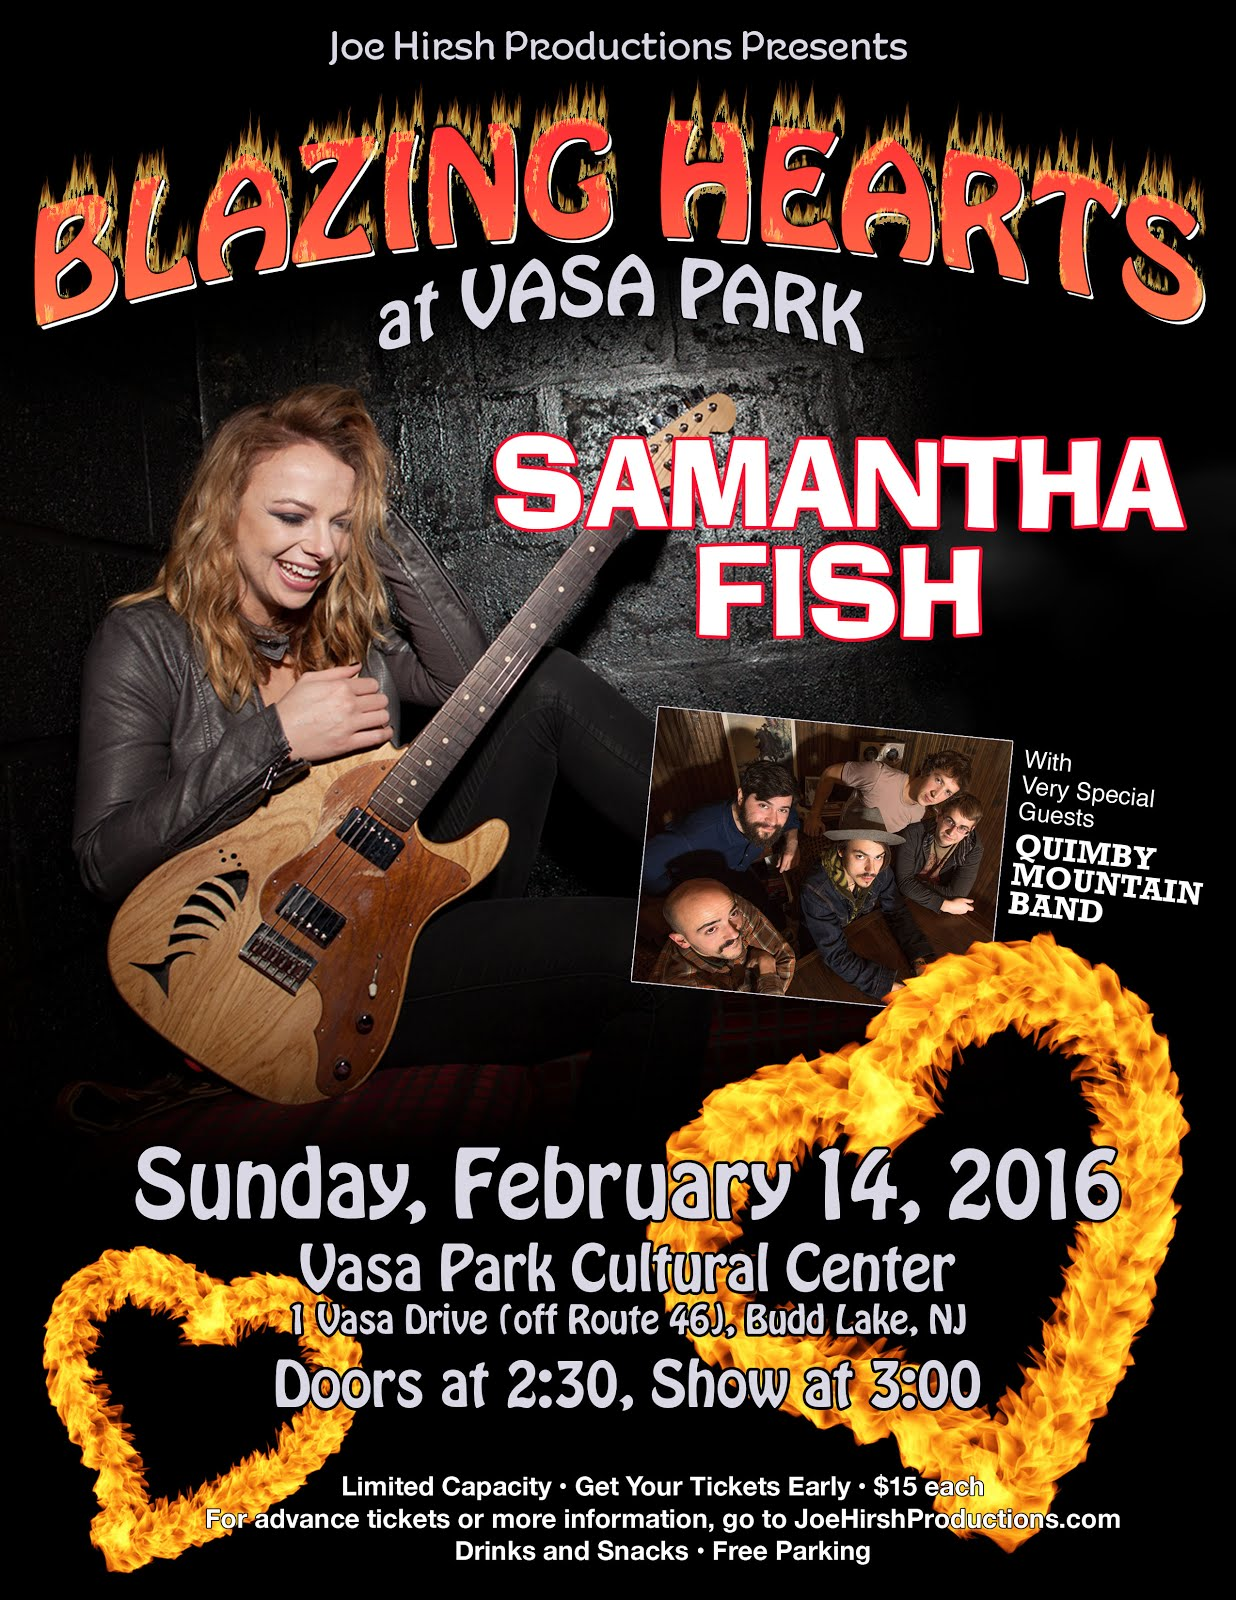 SAMANTHA FISH TICKETS NOW ON SALE!